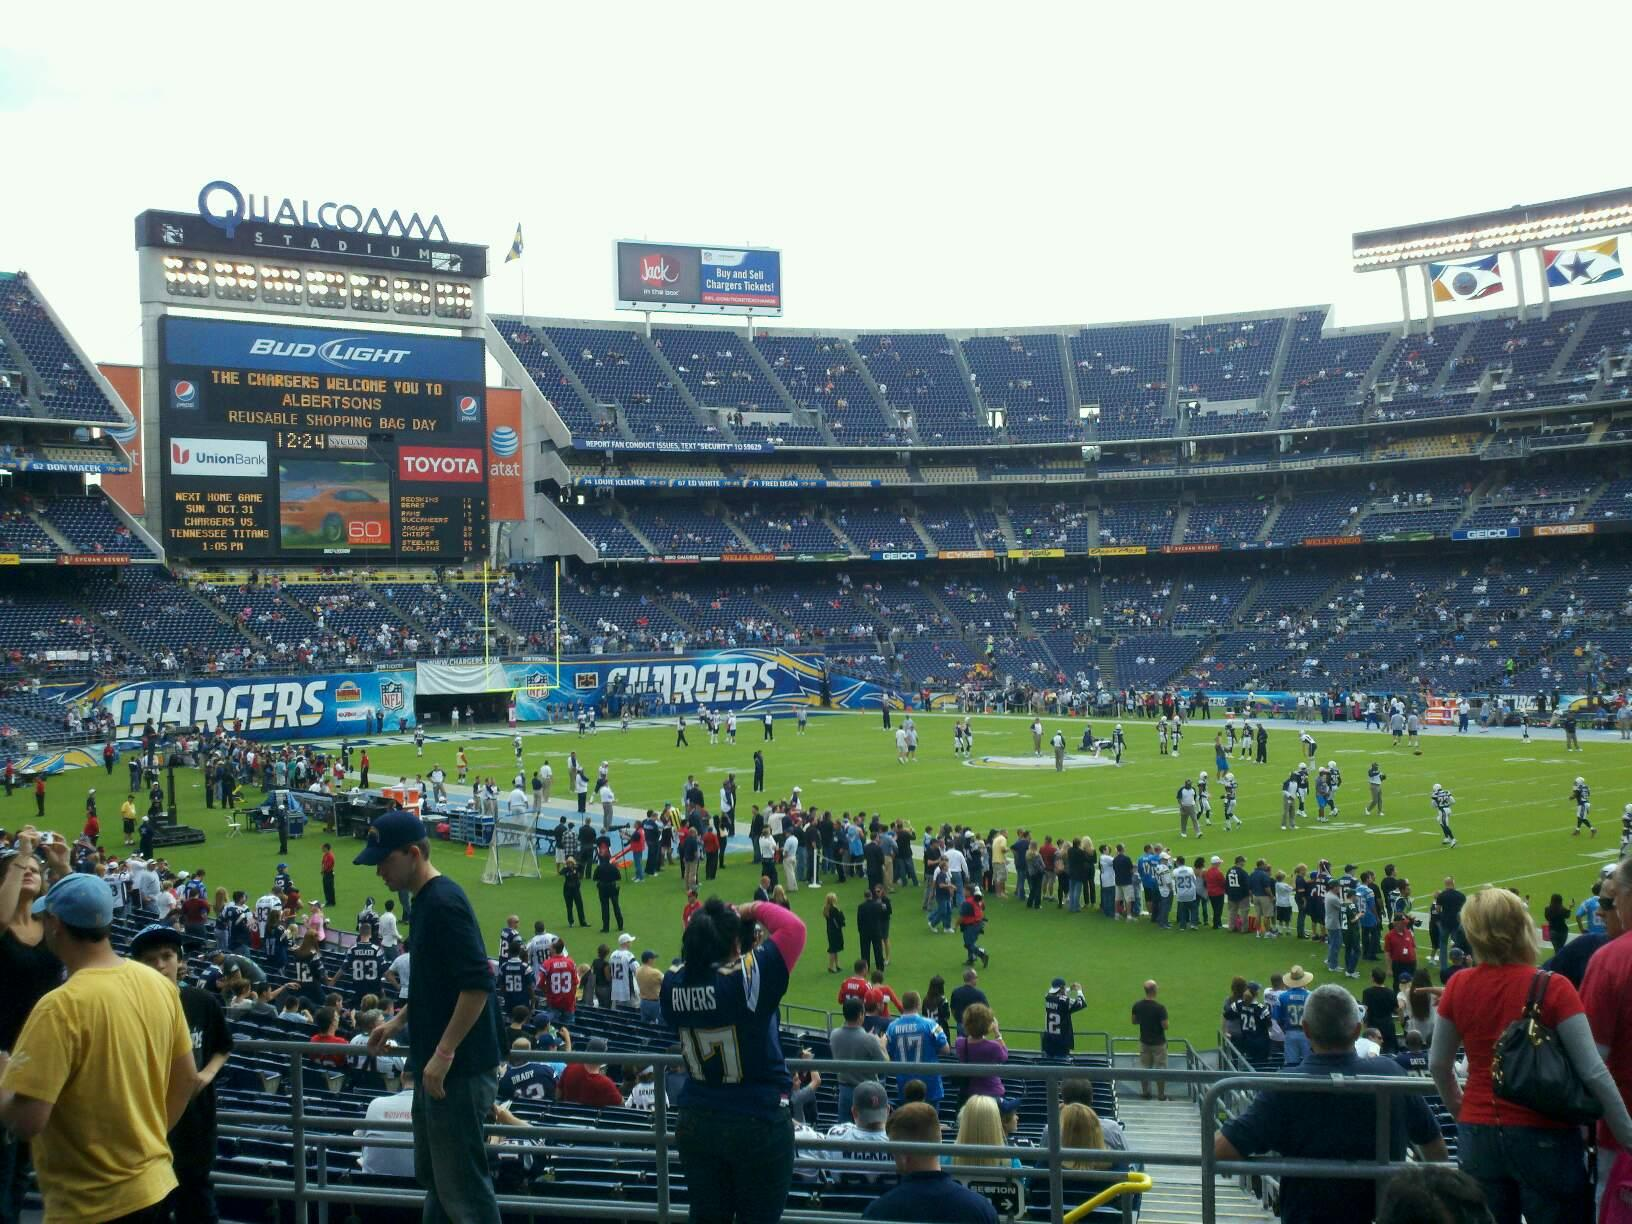 Qualcomm Stadium Section P13 Row 6 Seat 10